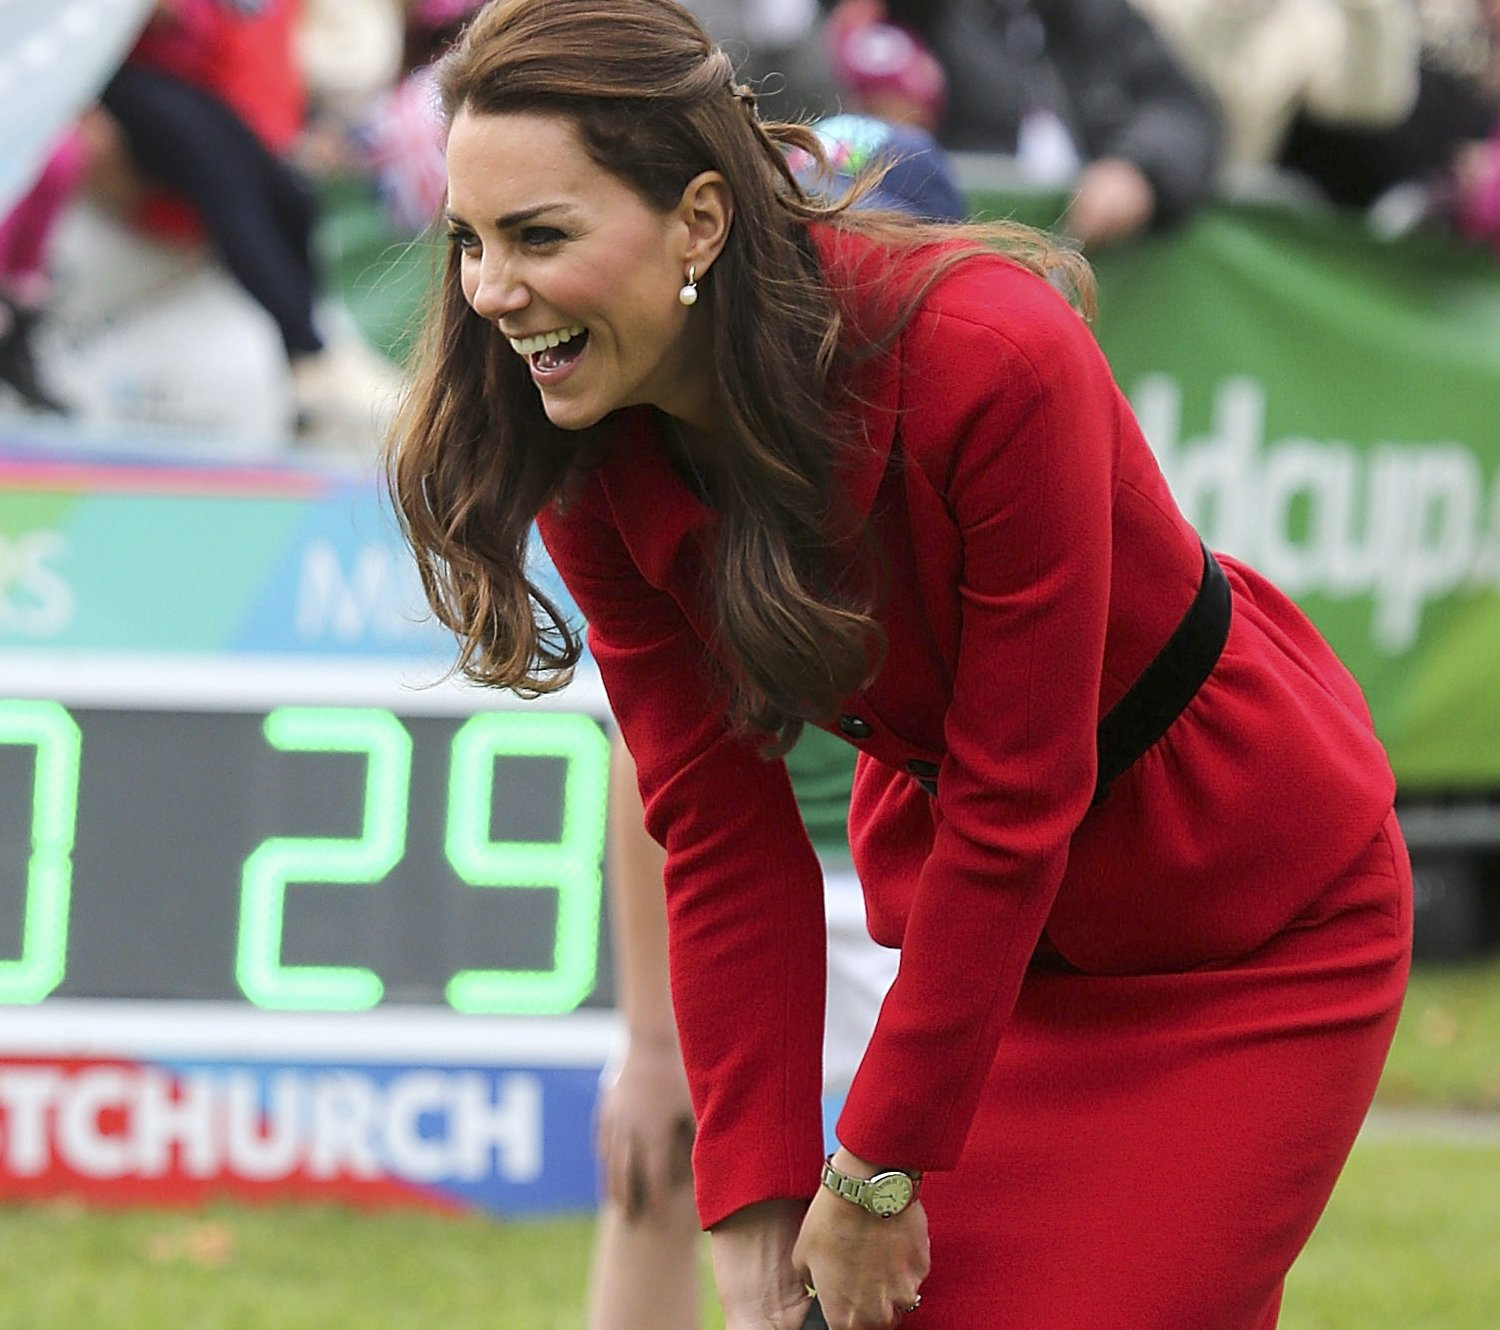 kate-middleton-red-suit-cricket-new-zealand